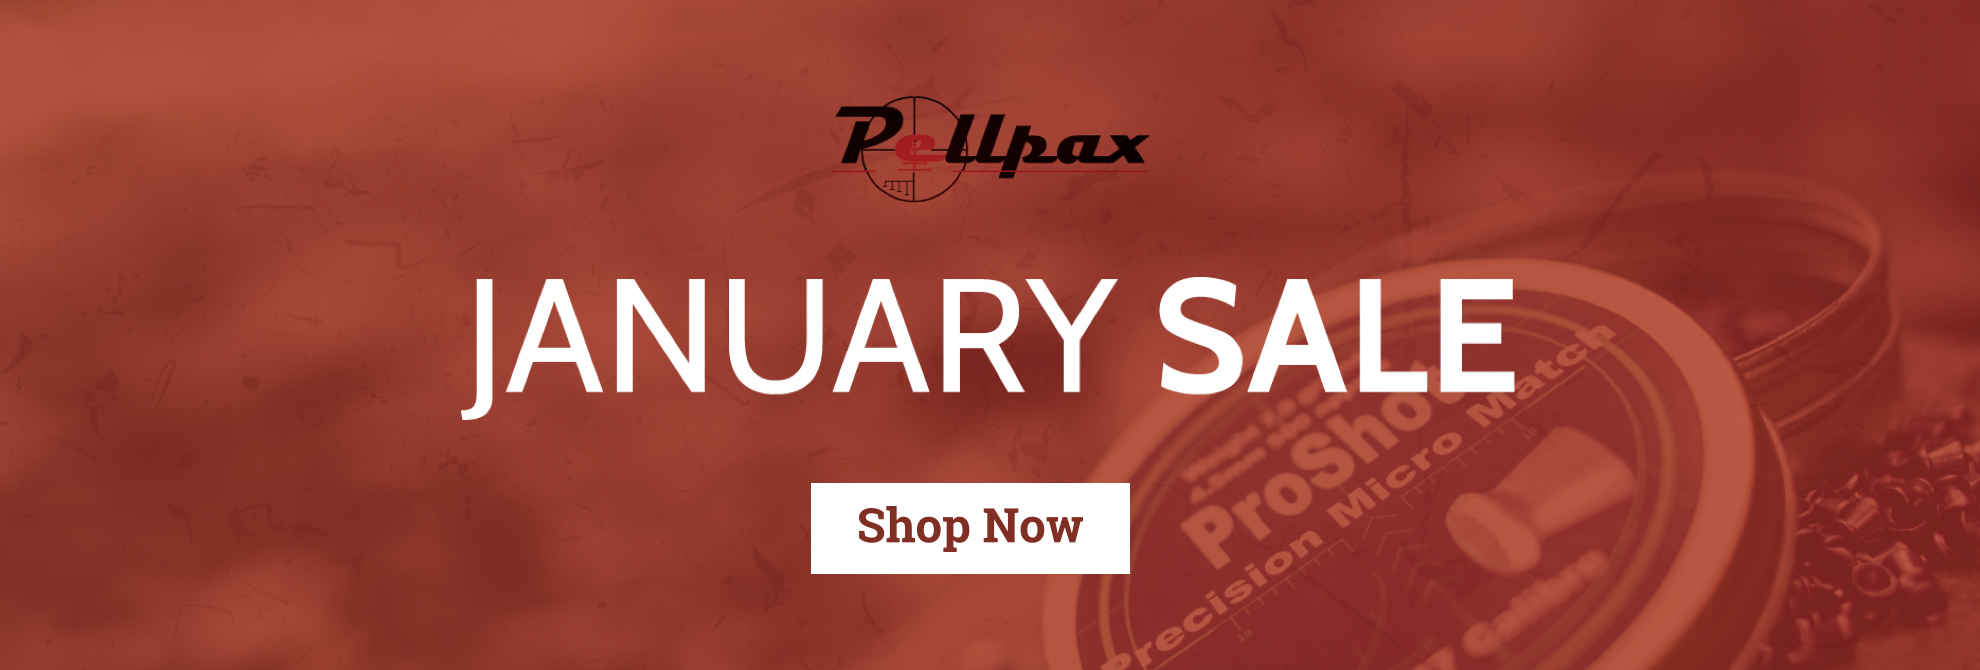 January Sales at Pellpax